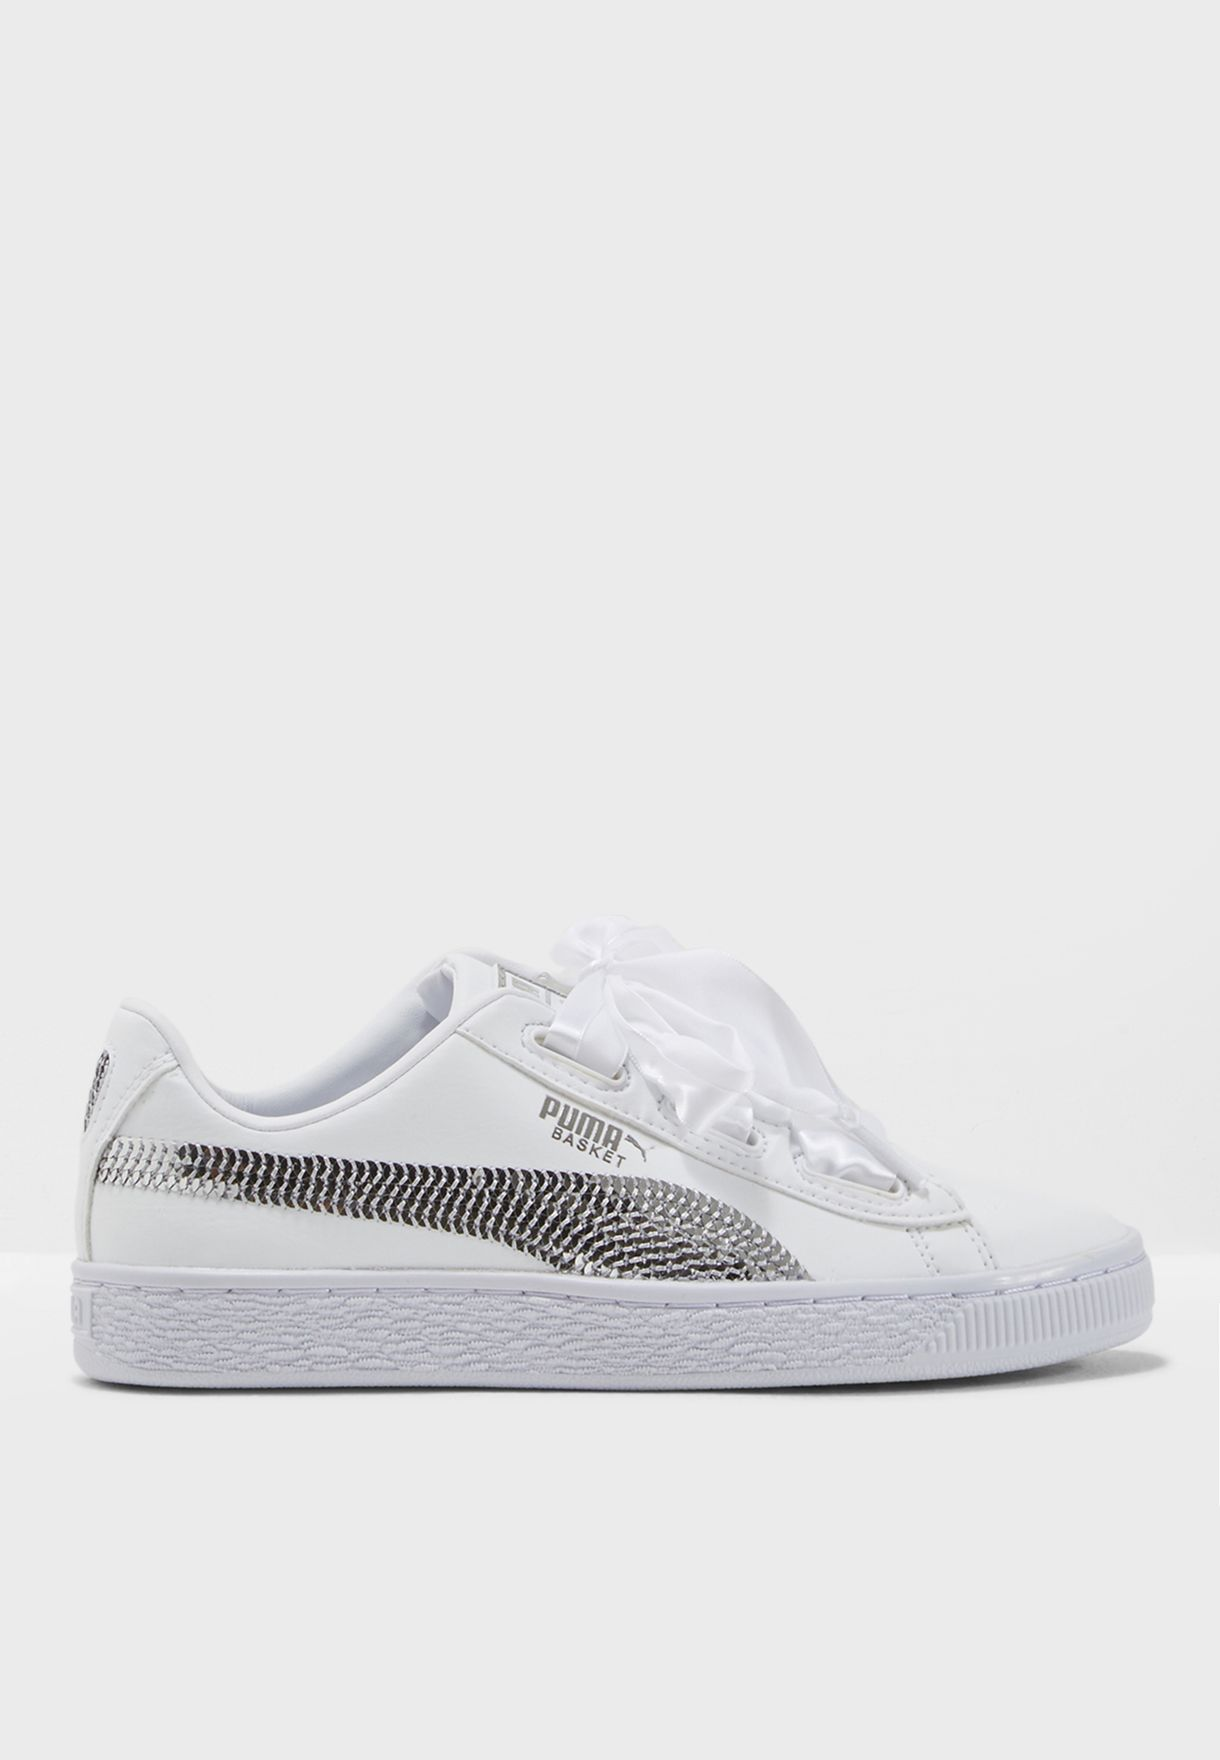 7894a7fa6 Shop PUMA white Youth Basket Heart Bling 36684702 for Kids in UAE ...